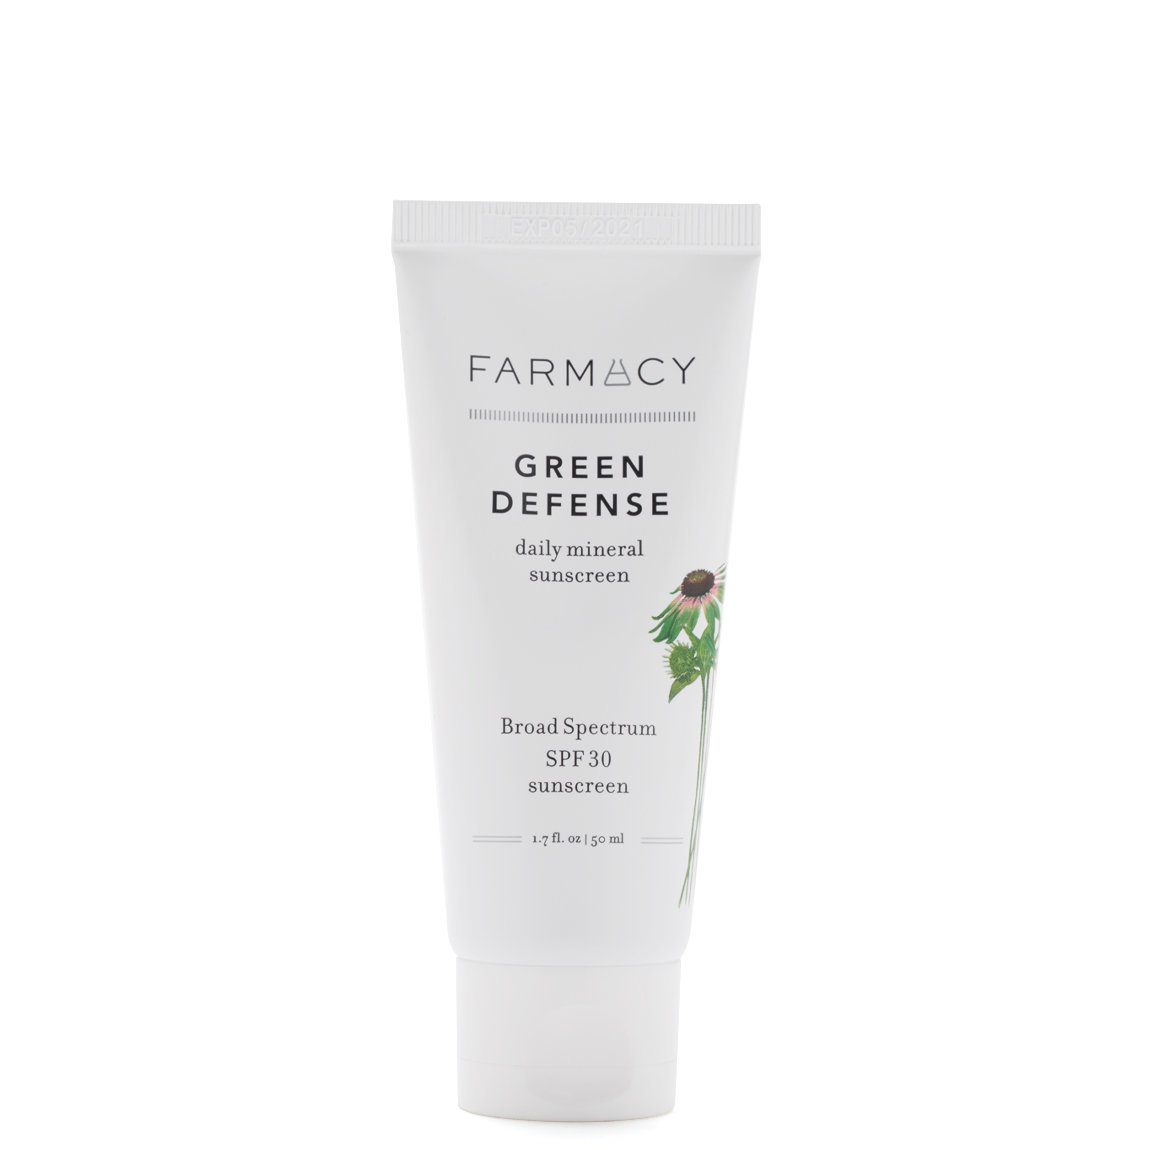 Farmacy Green Defense Broad Spectrum SPF 30 Mineral Sunscreen product swatch.